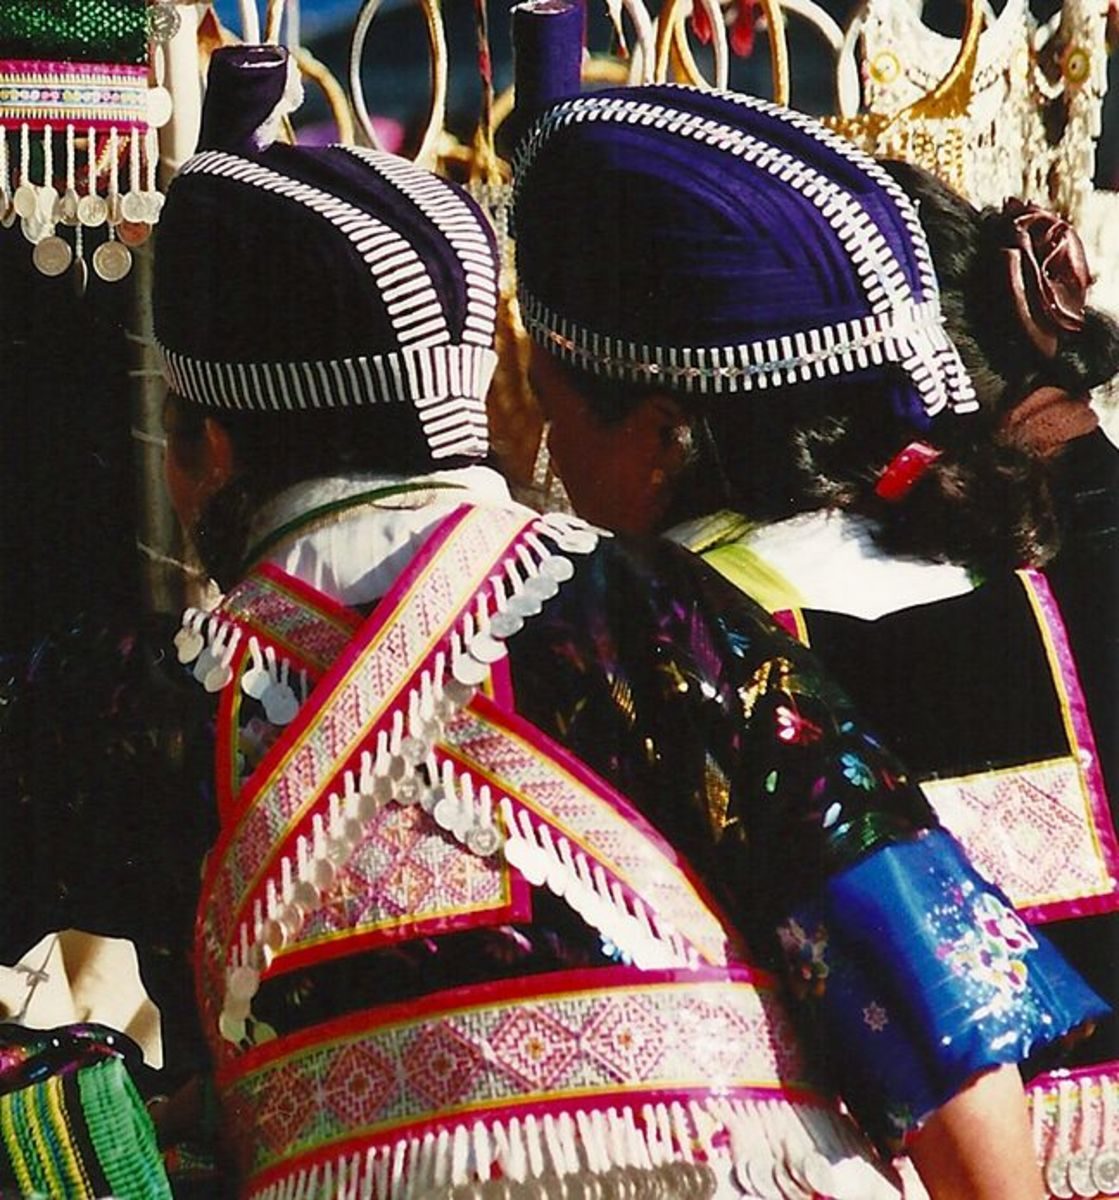 Another photo taken at the Hmong New Year celebration showing the stitching on the women's belts.